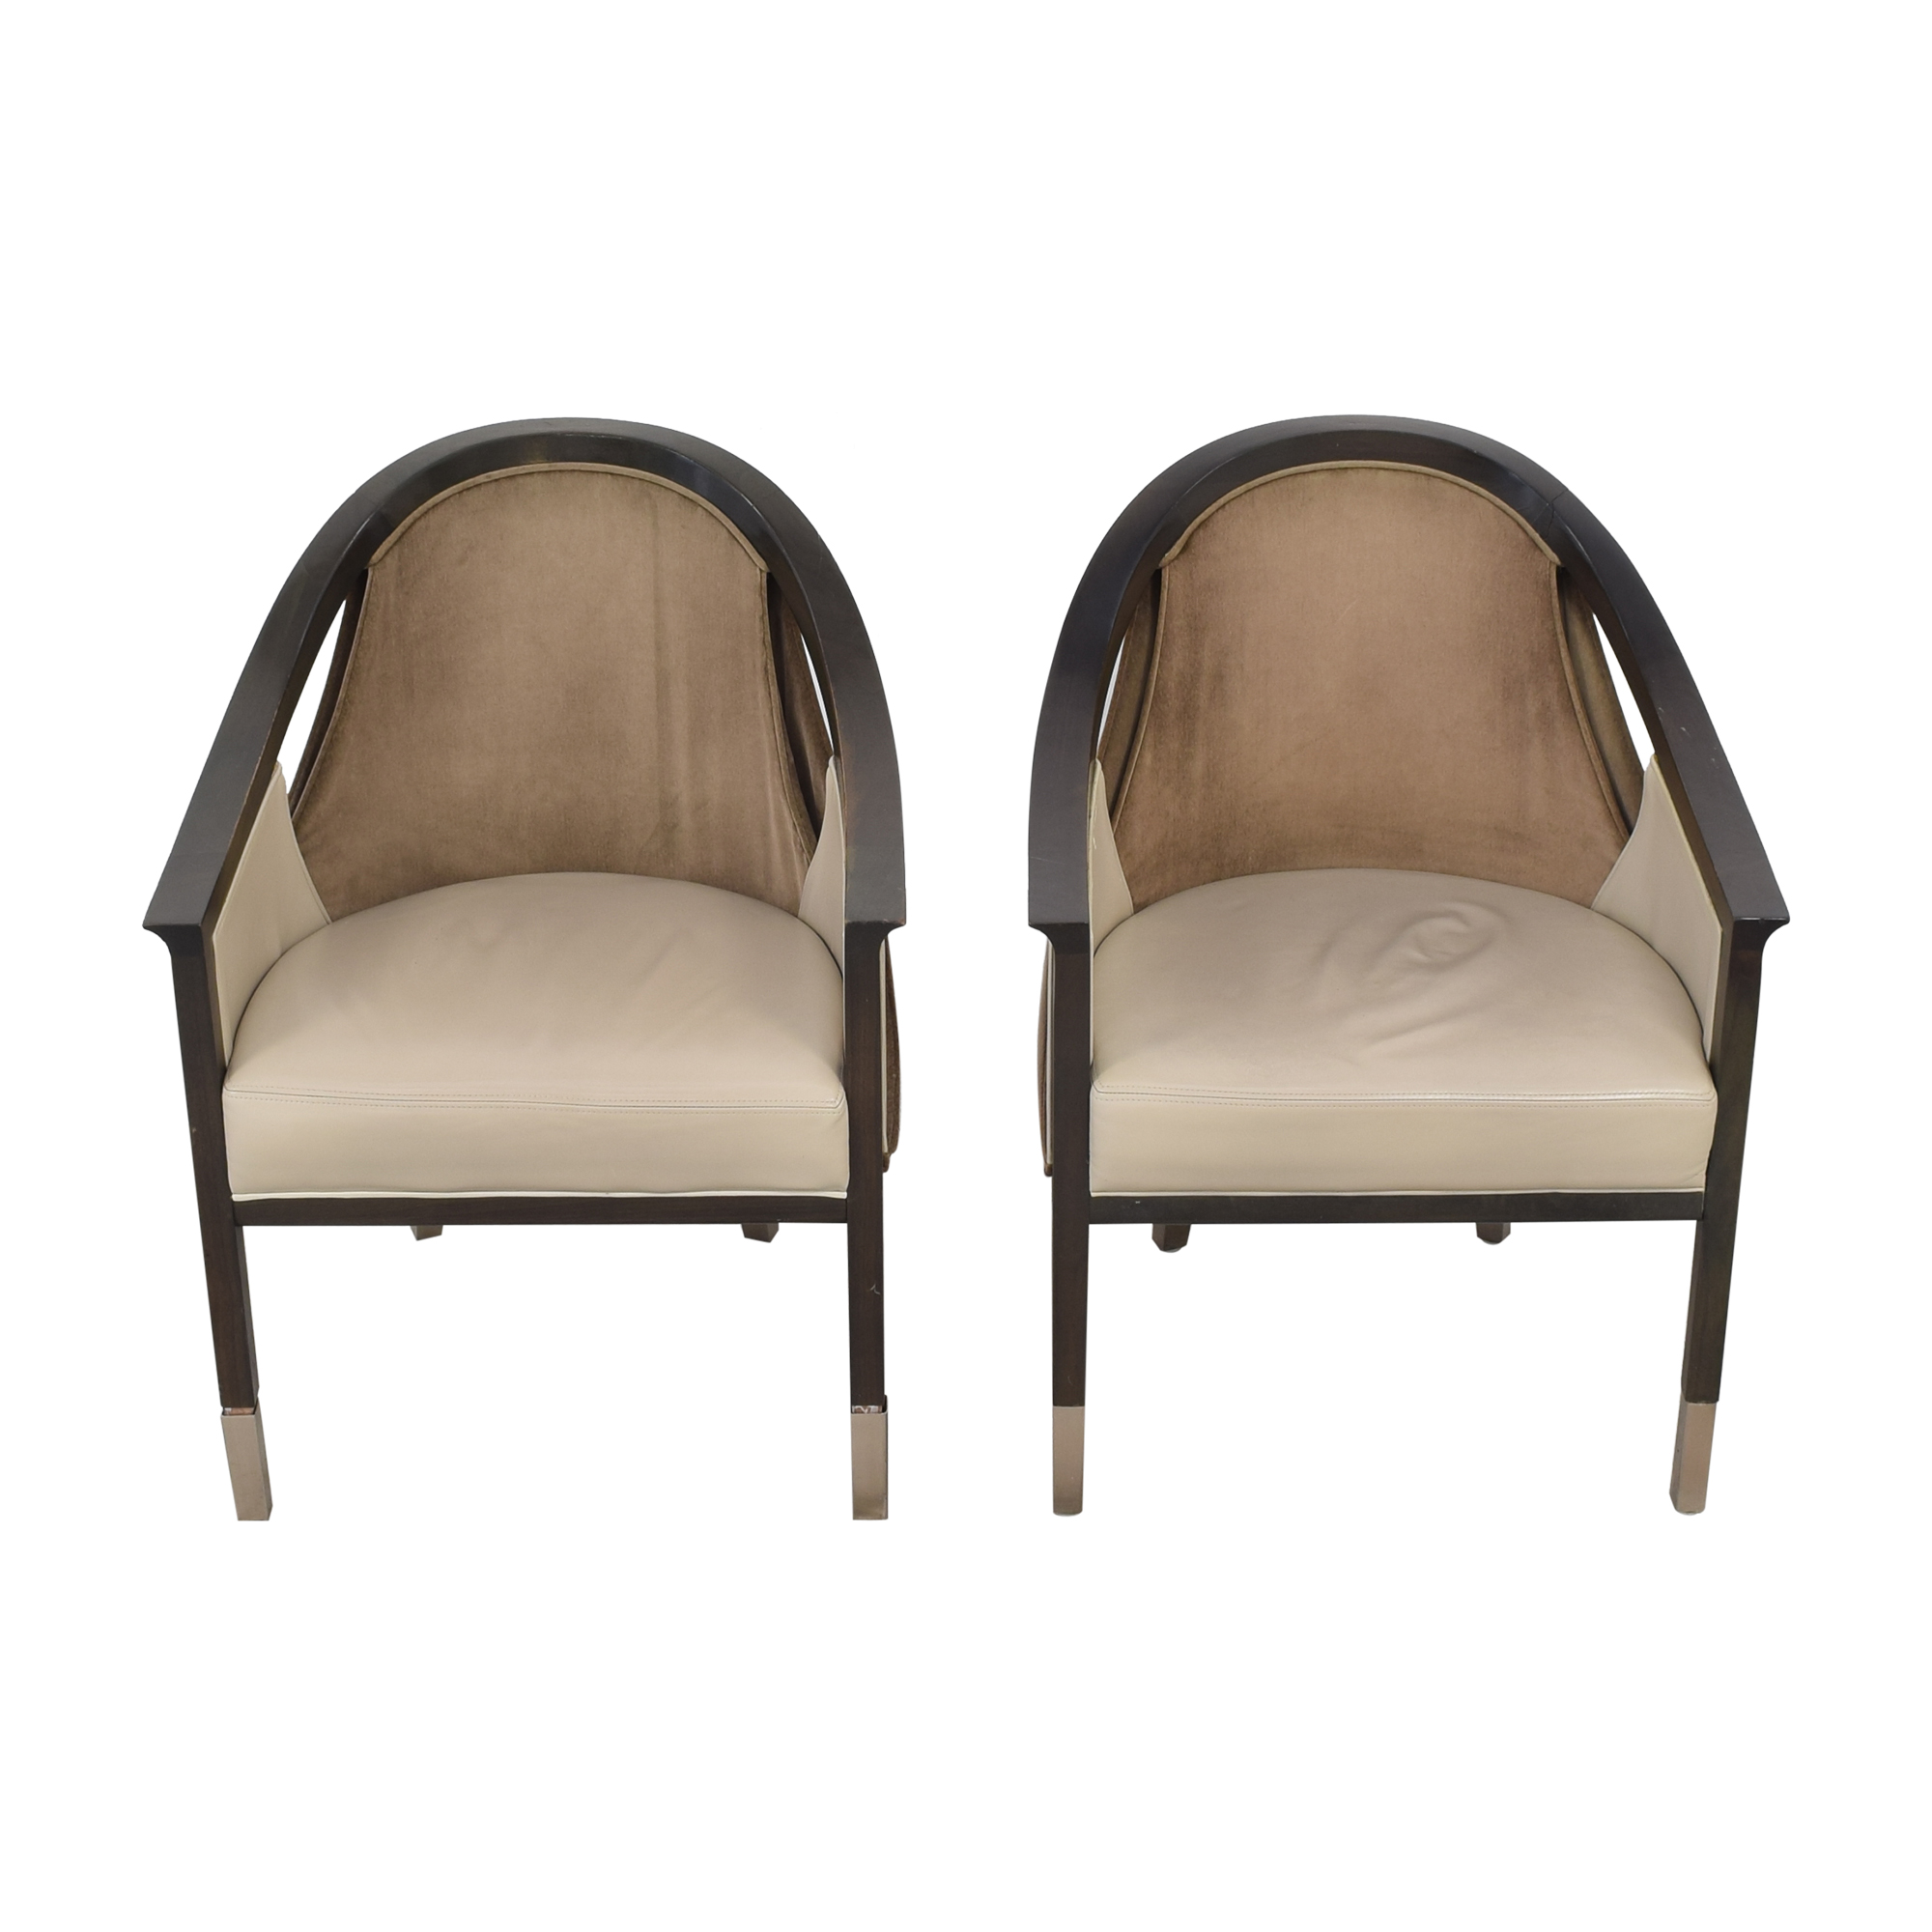 Allied Form Works Allied Works Eleven Madison Park Dining Room Chairs pa